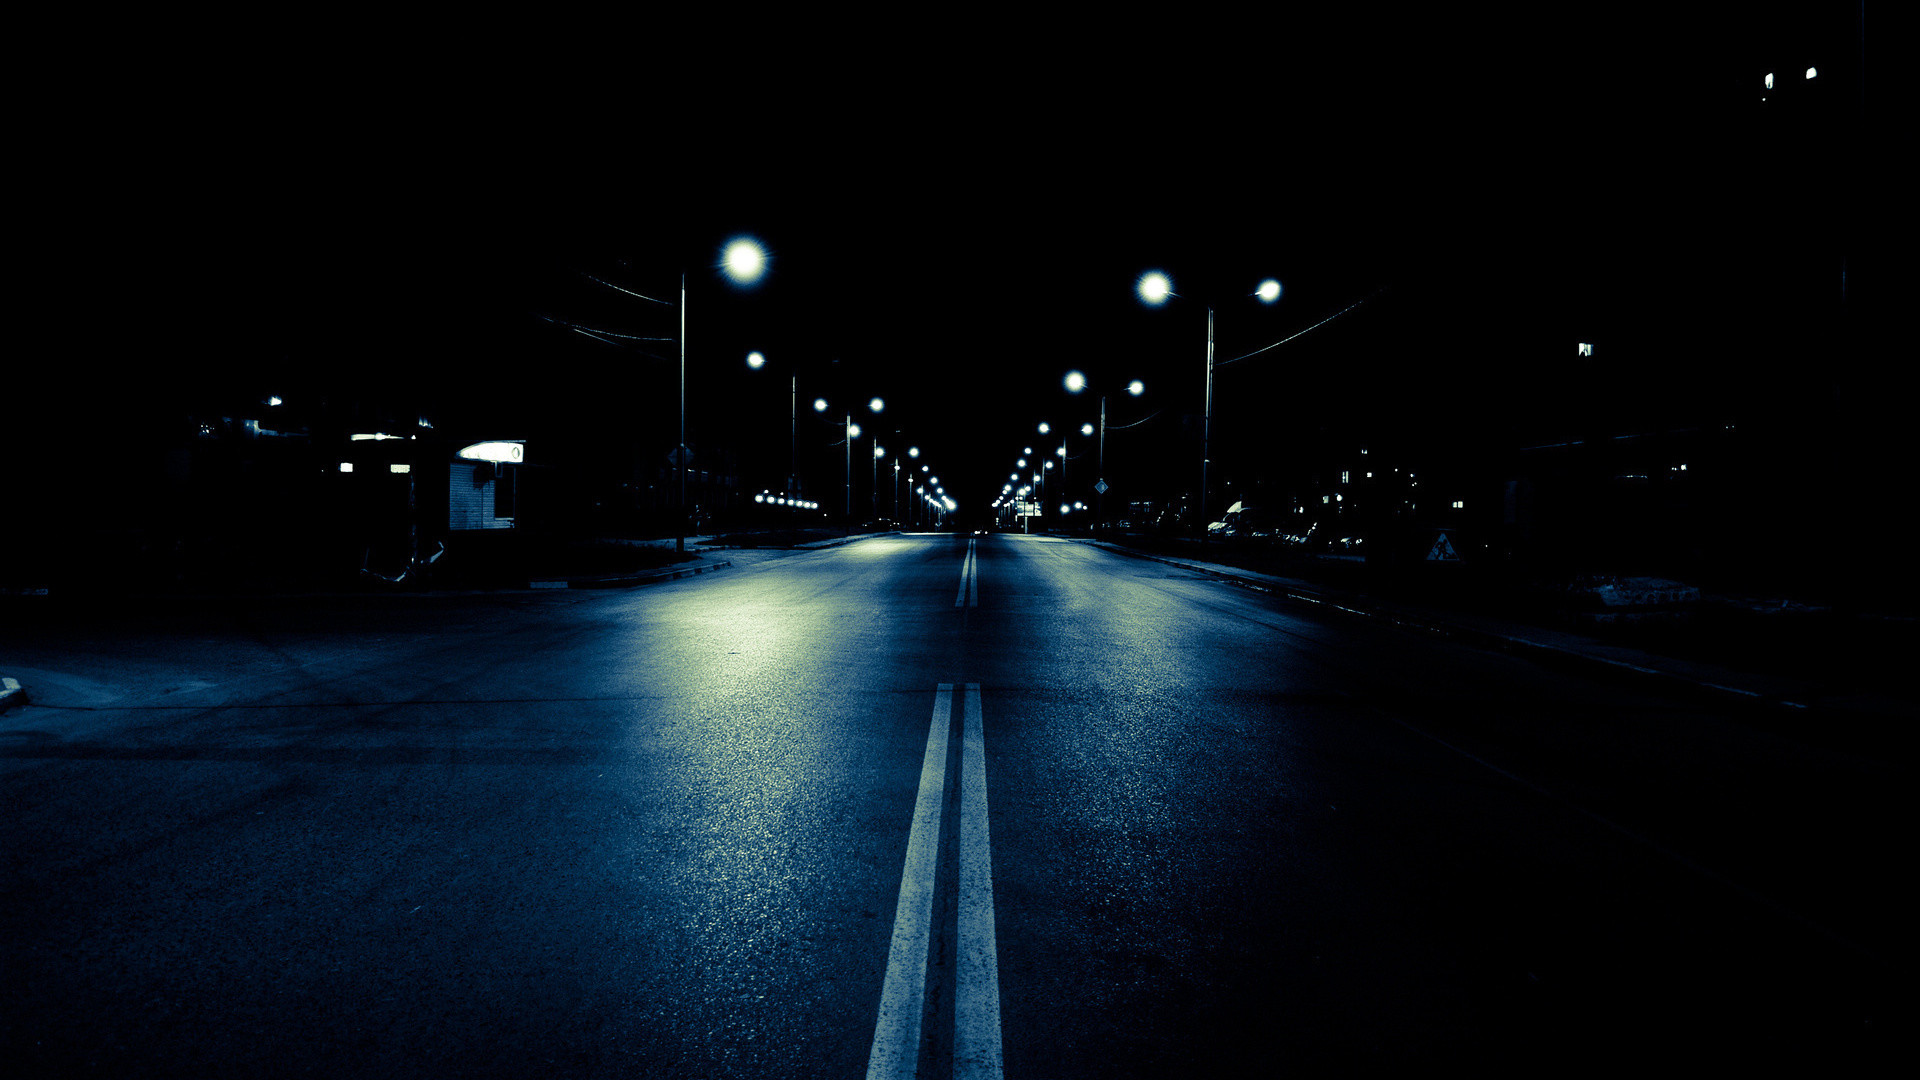 Night City Wallpapers – Sounds of the sleeping city